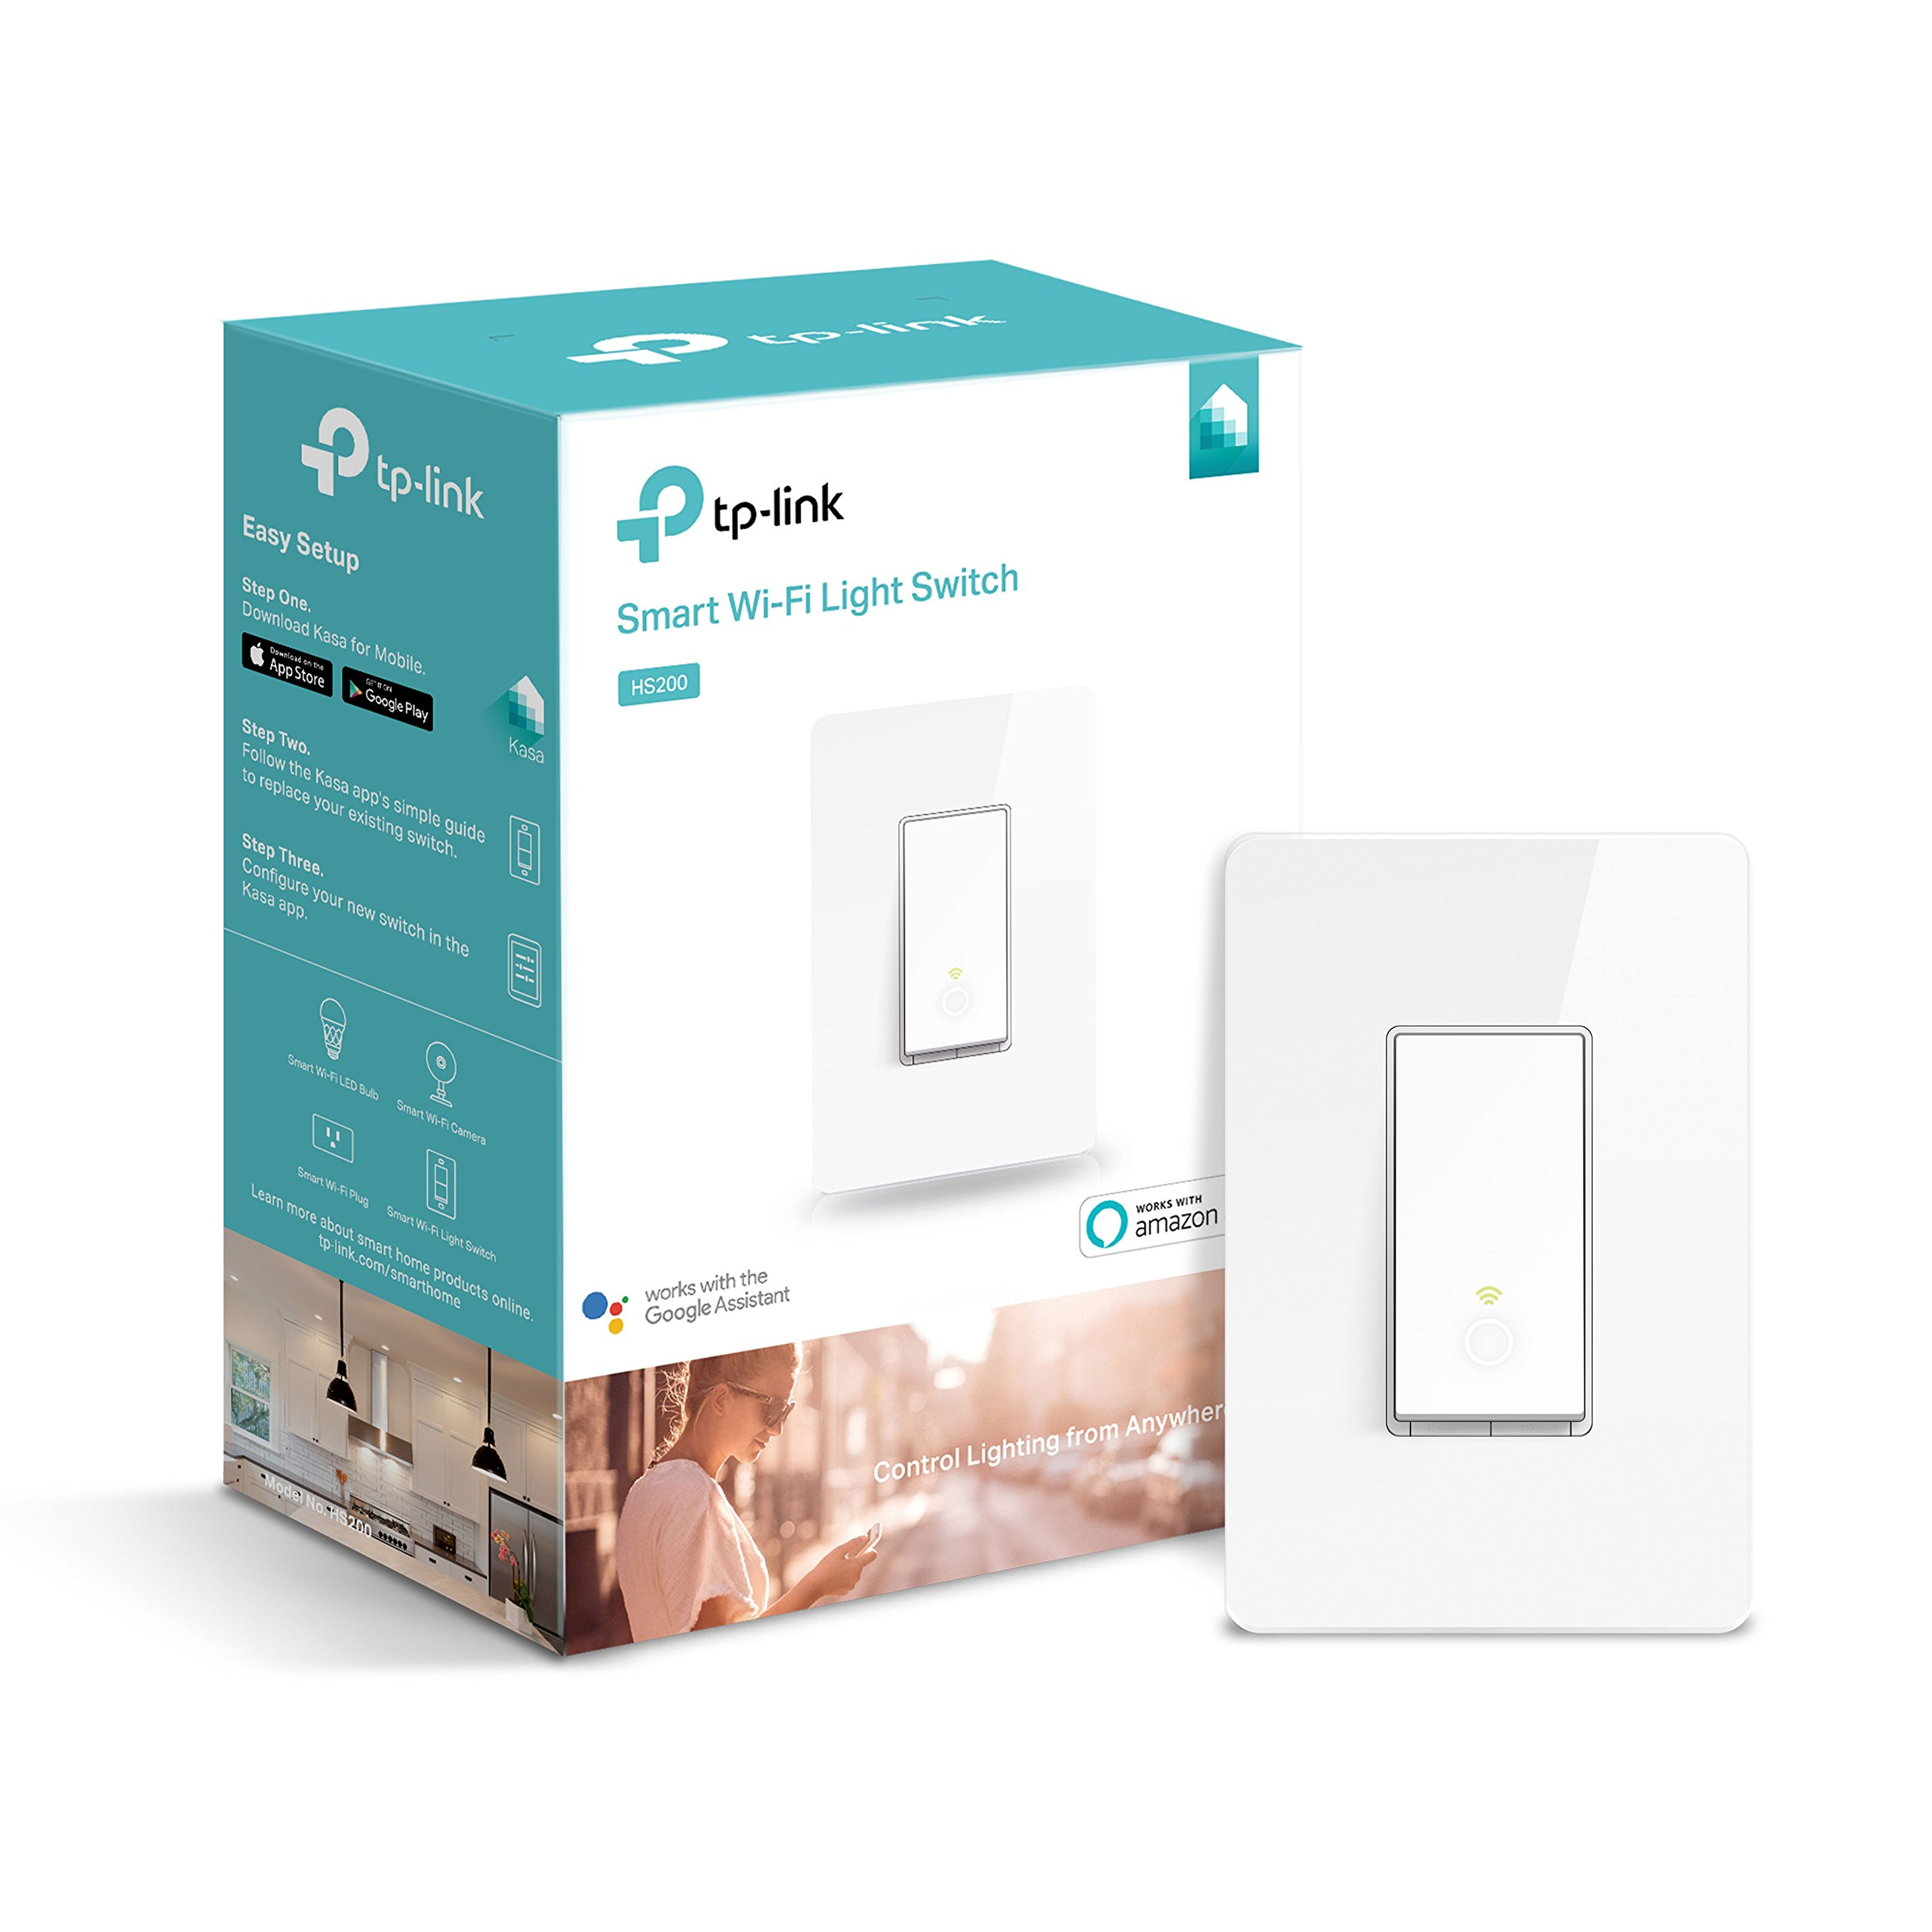 Kasa Smart Light Switch by TP-Link - Needs Neutral Wire, WiFi Light Switch, Works with Alexa & Google (HS200) by TP-Link